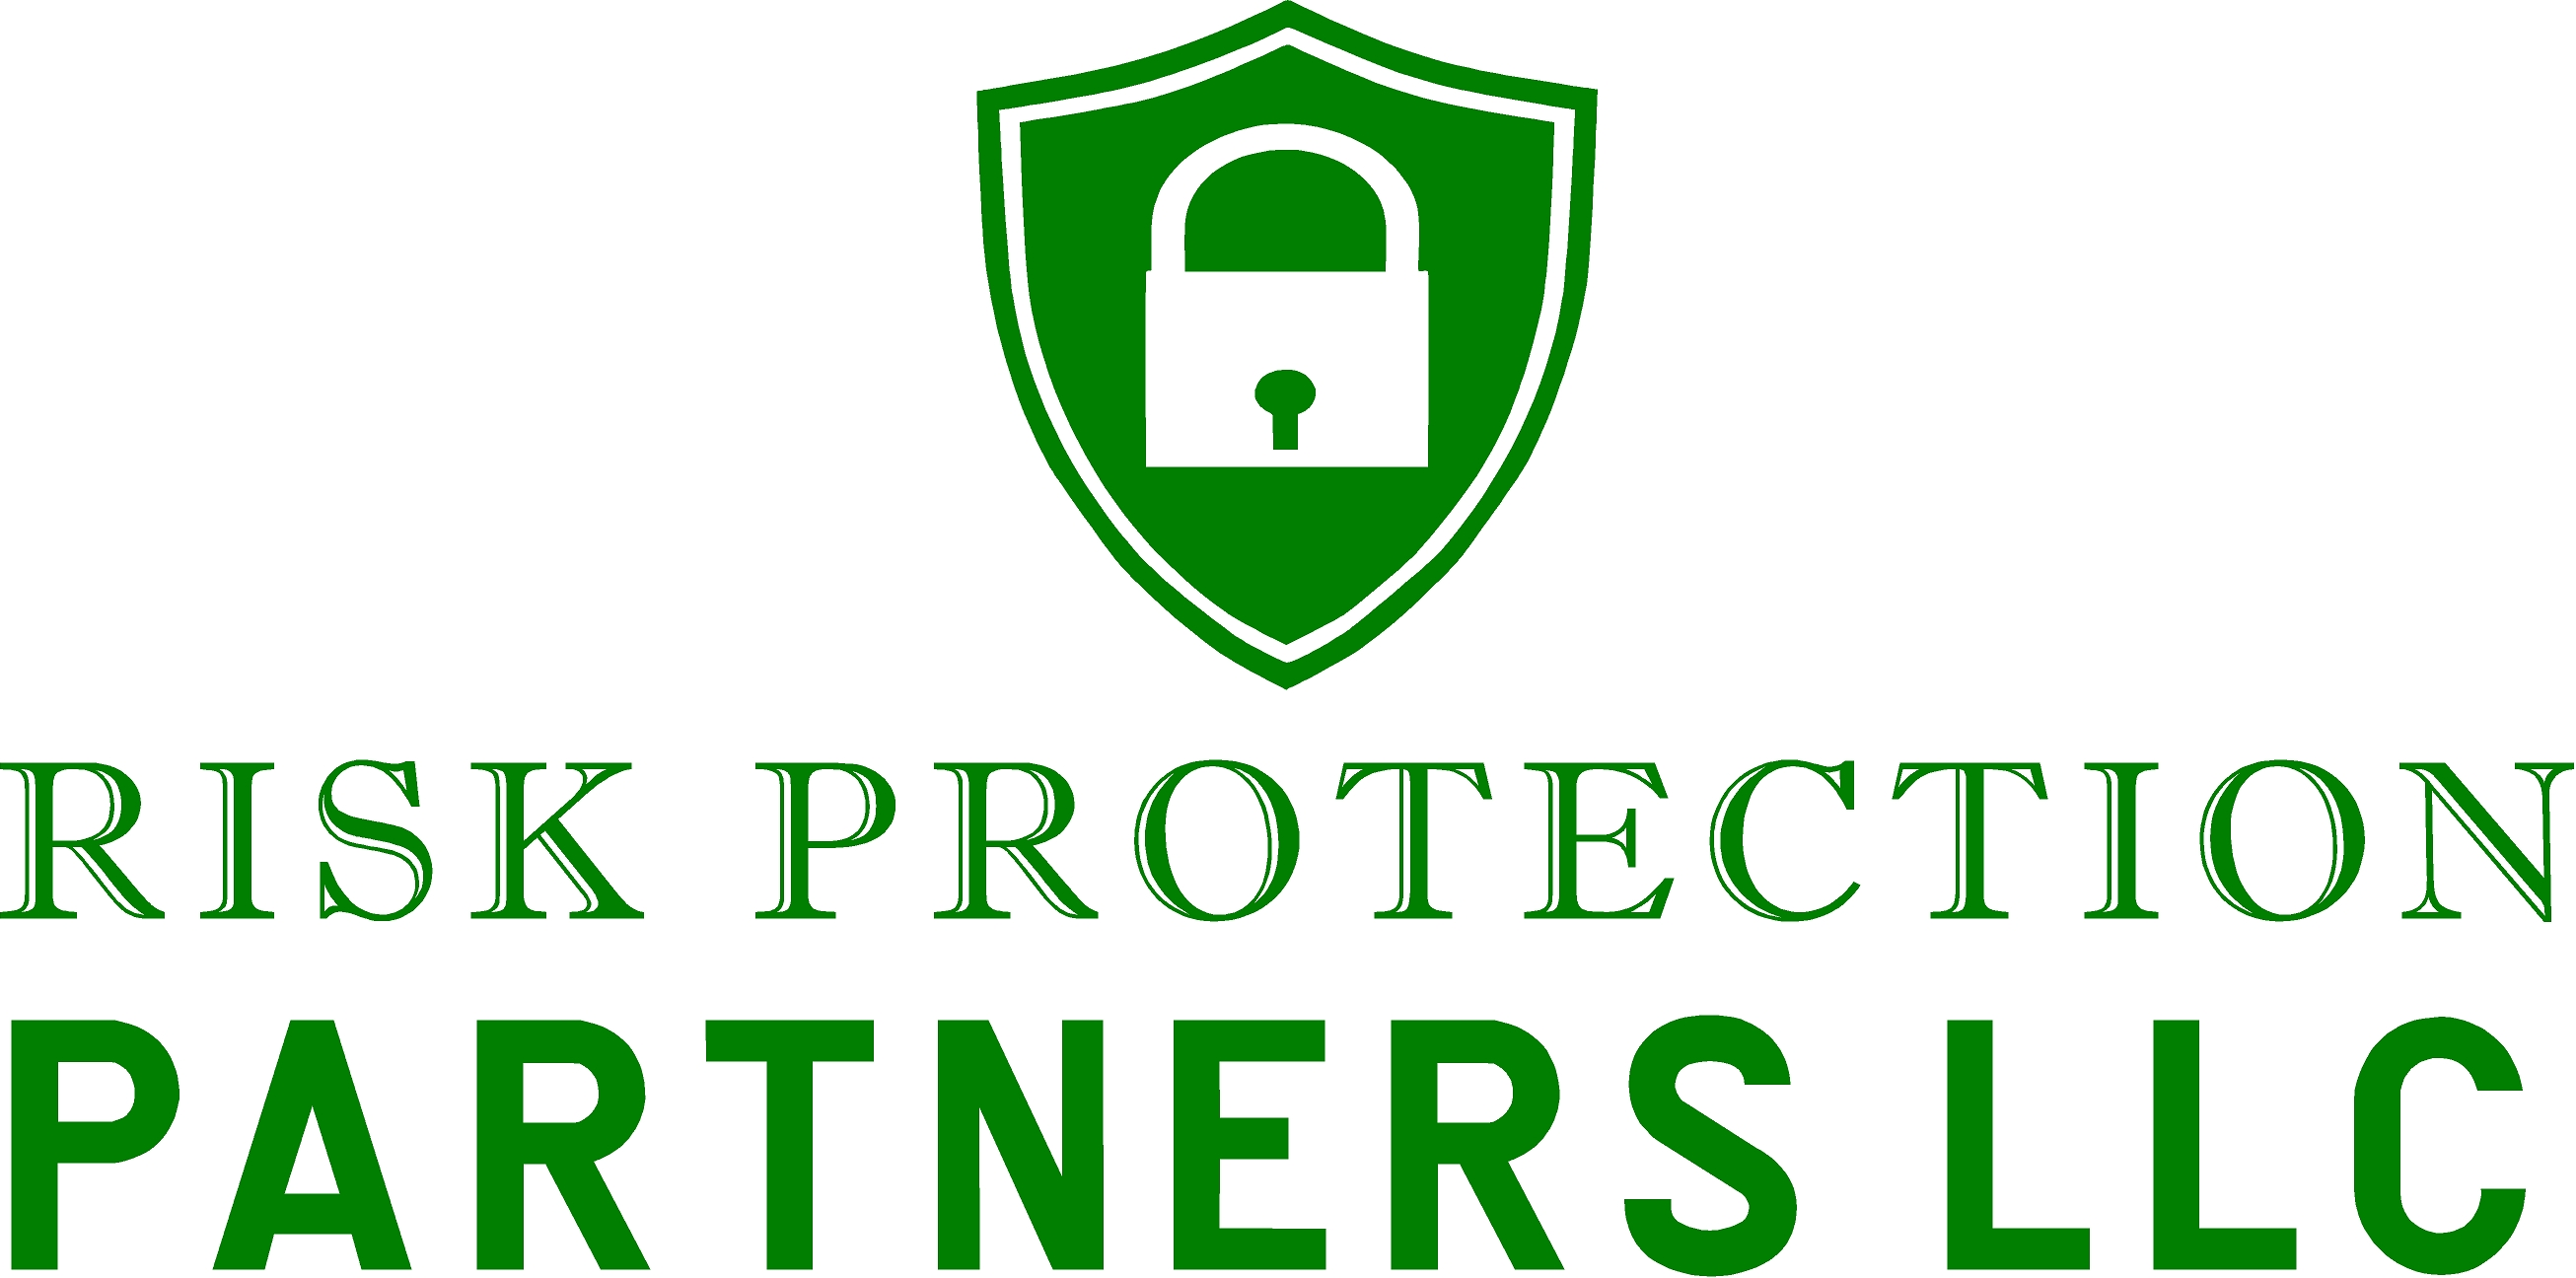 Risk Protection Partners